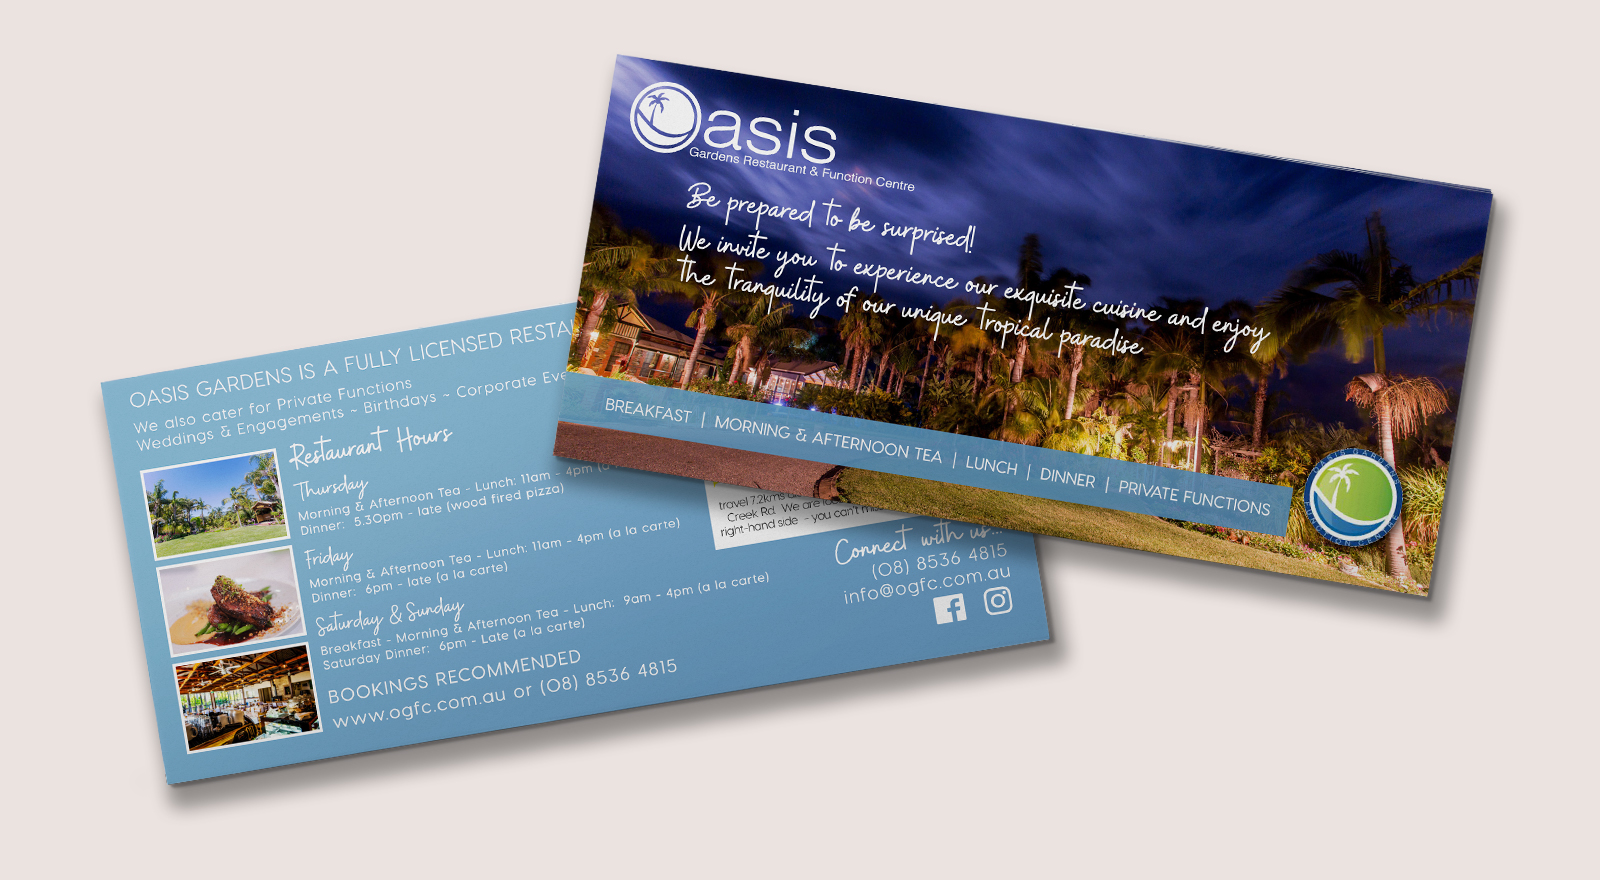 Restaurant Information Postcard design for Oasis Gardens